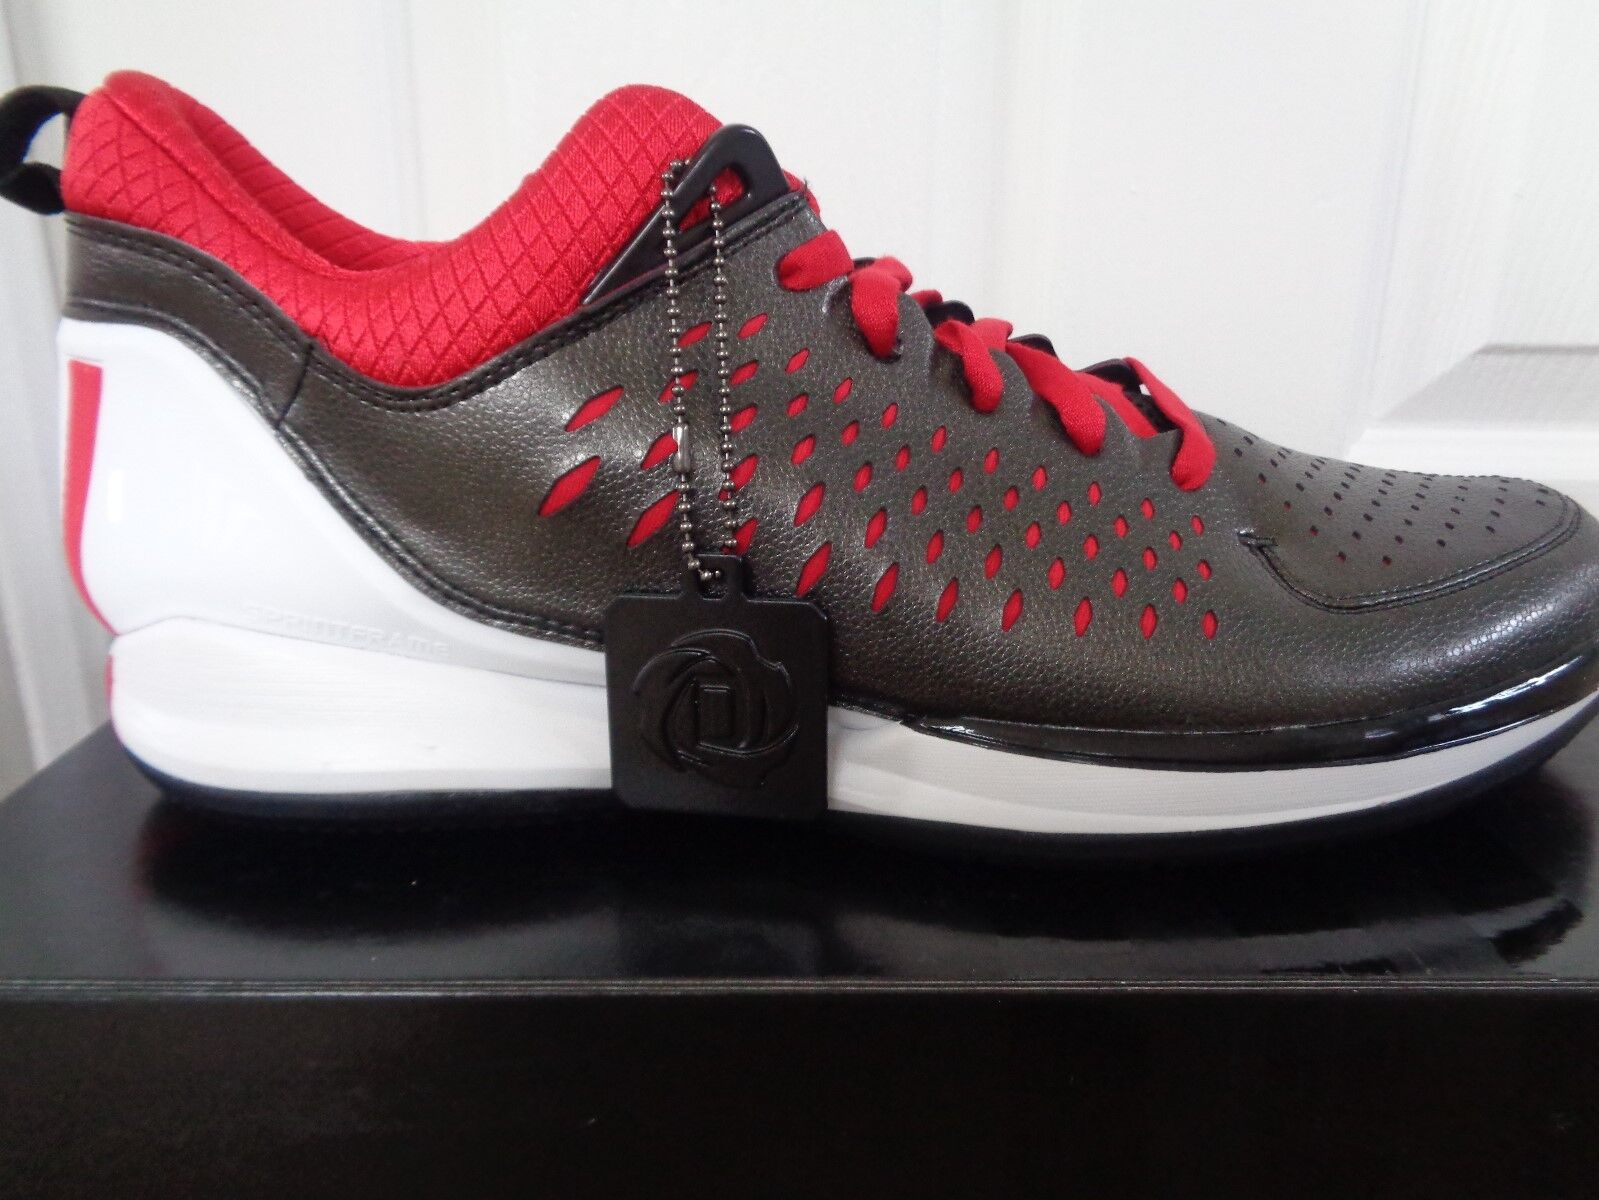 Bdidas D Rose 3 Low basketball shoes trainer G65745 uk 13.5 eu 49 1/3 us 14 NEW